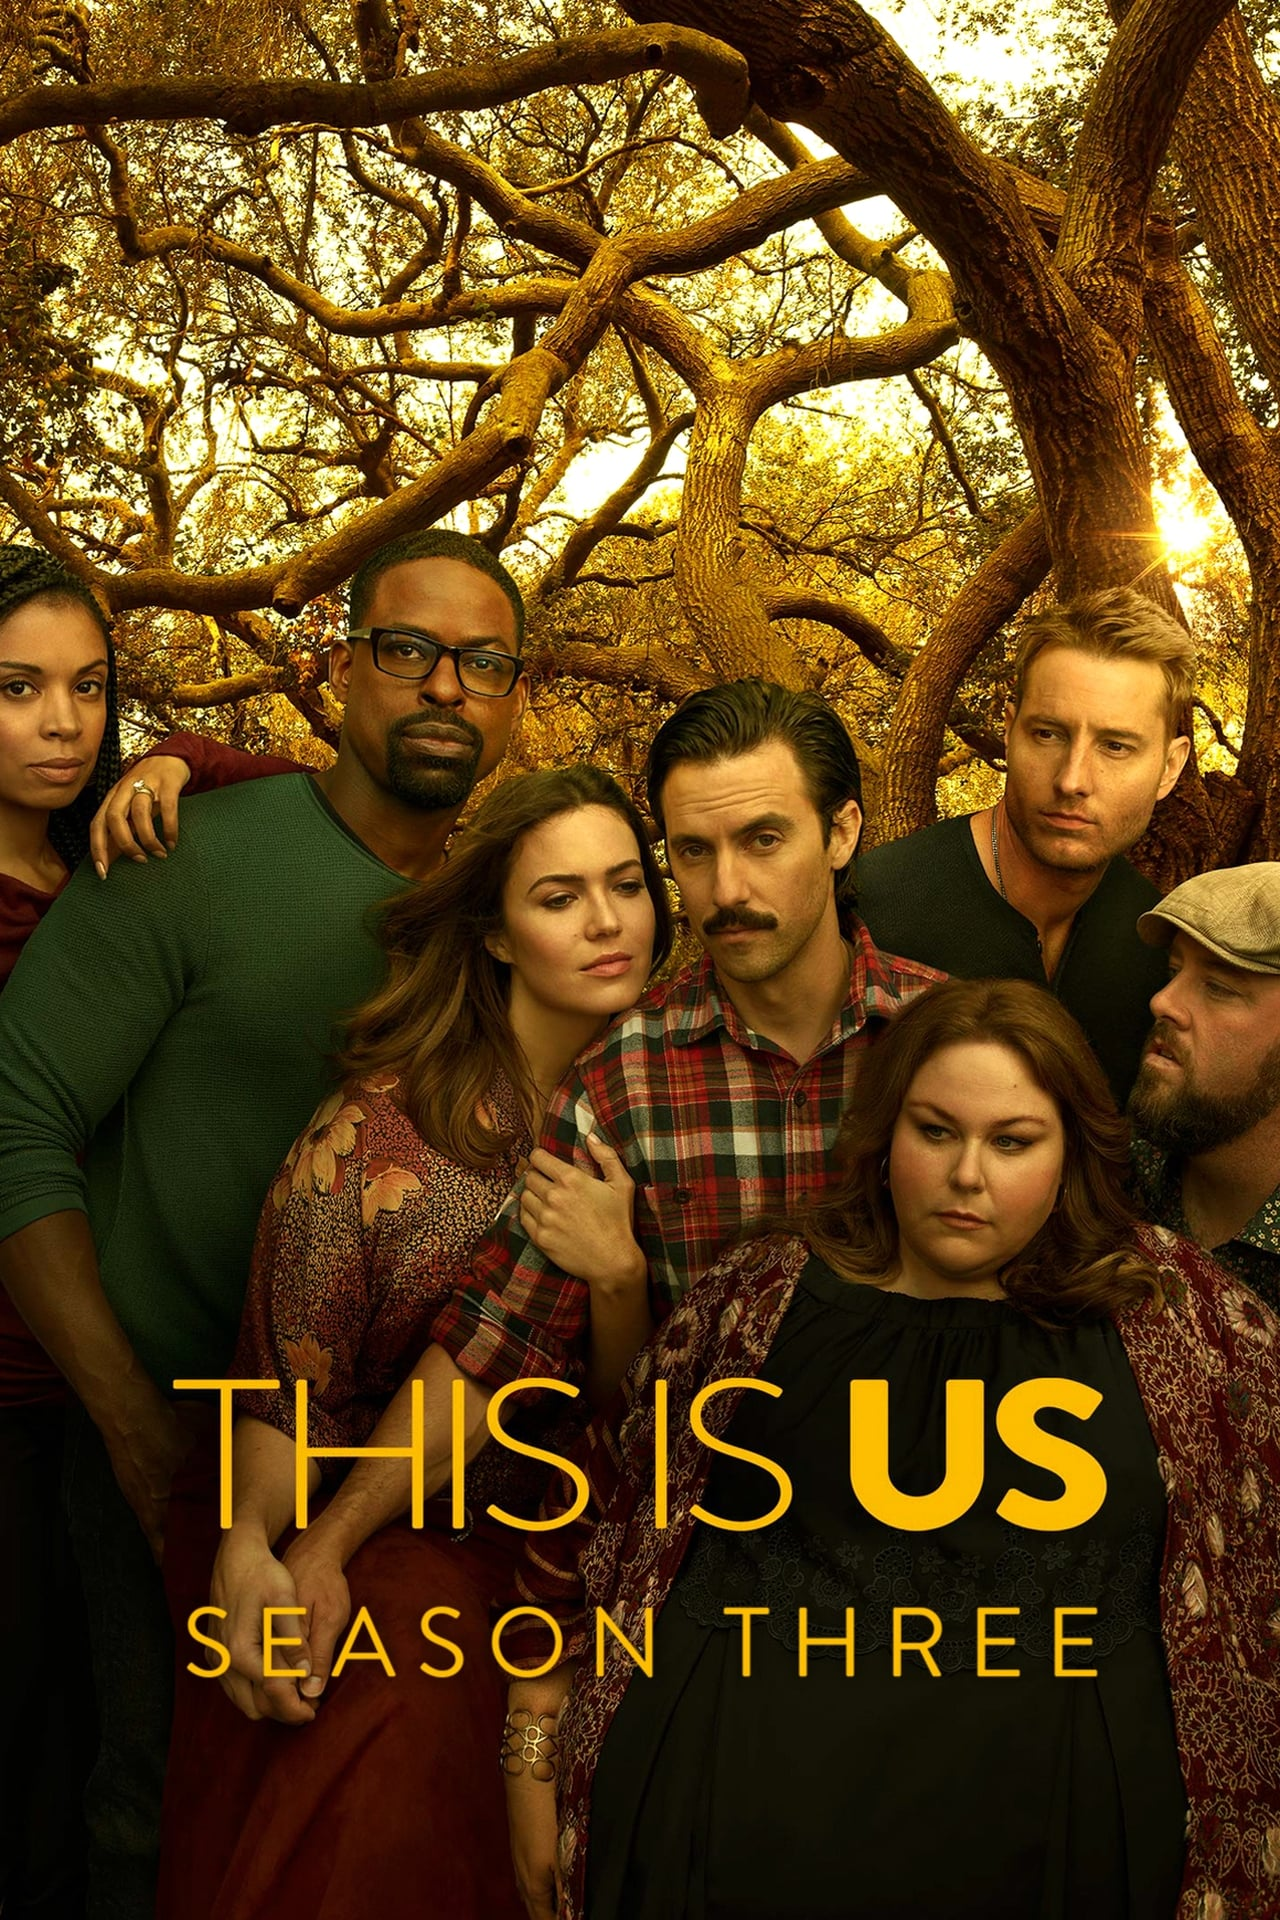 This Is Us Season 3